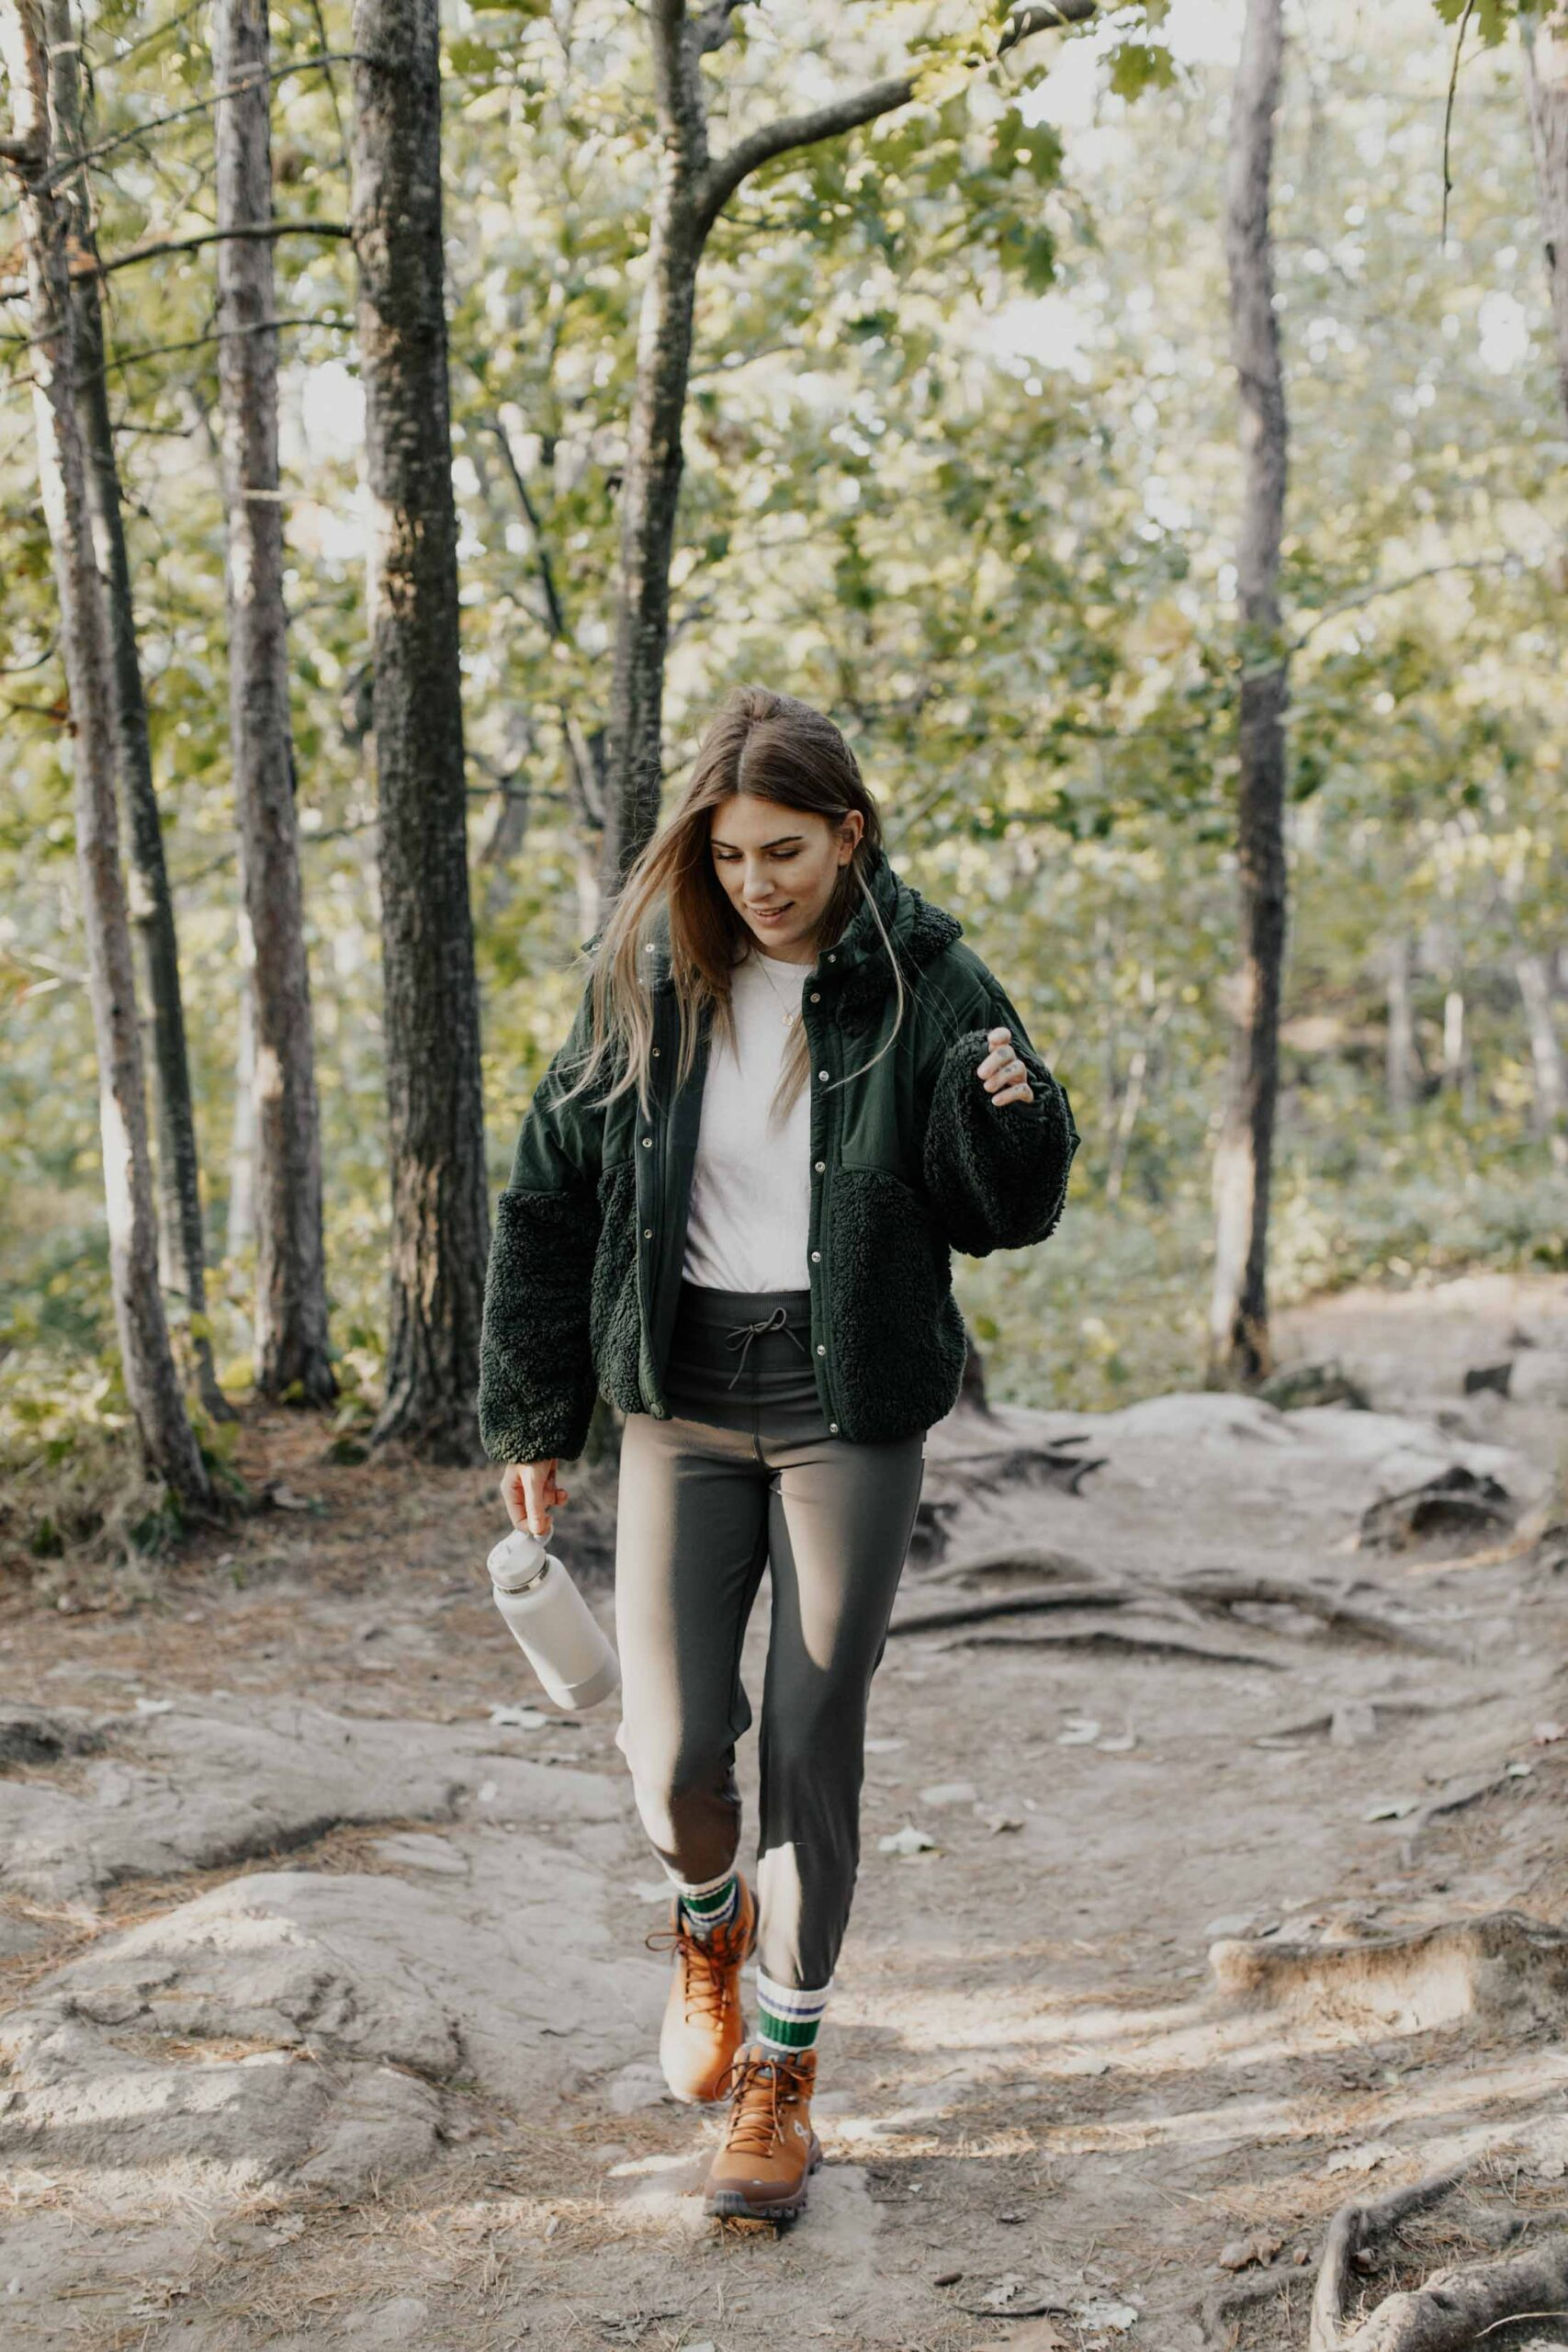 The best way to keep hiking outfits easy & cute is by starting with a pair of leggings & a trusty pair of boots. Then I top it all off with a light tee & fleece jacket.